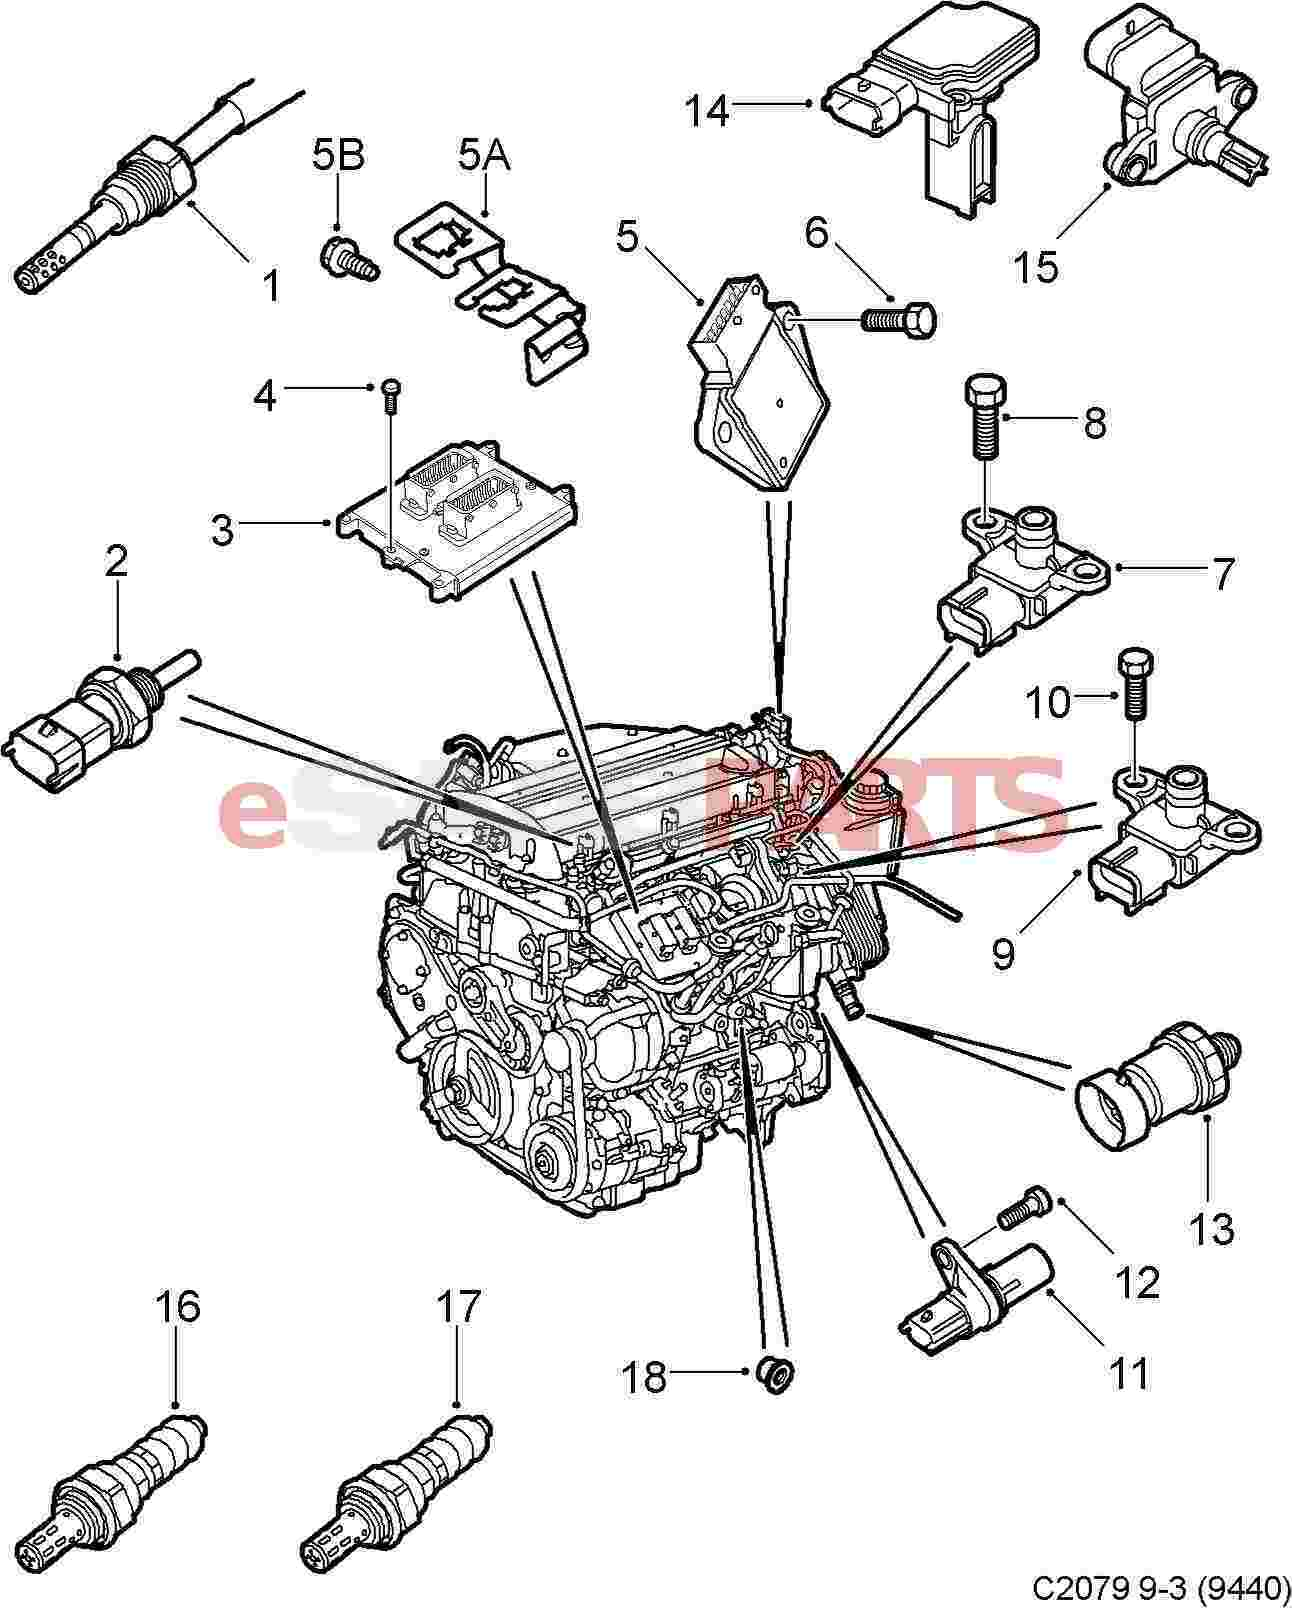 Fuses Diagram 2003 Saab 9 3 Turbo